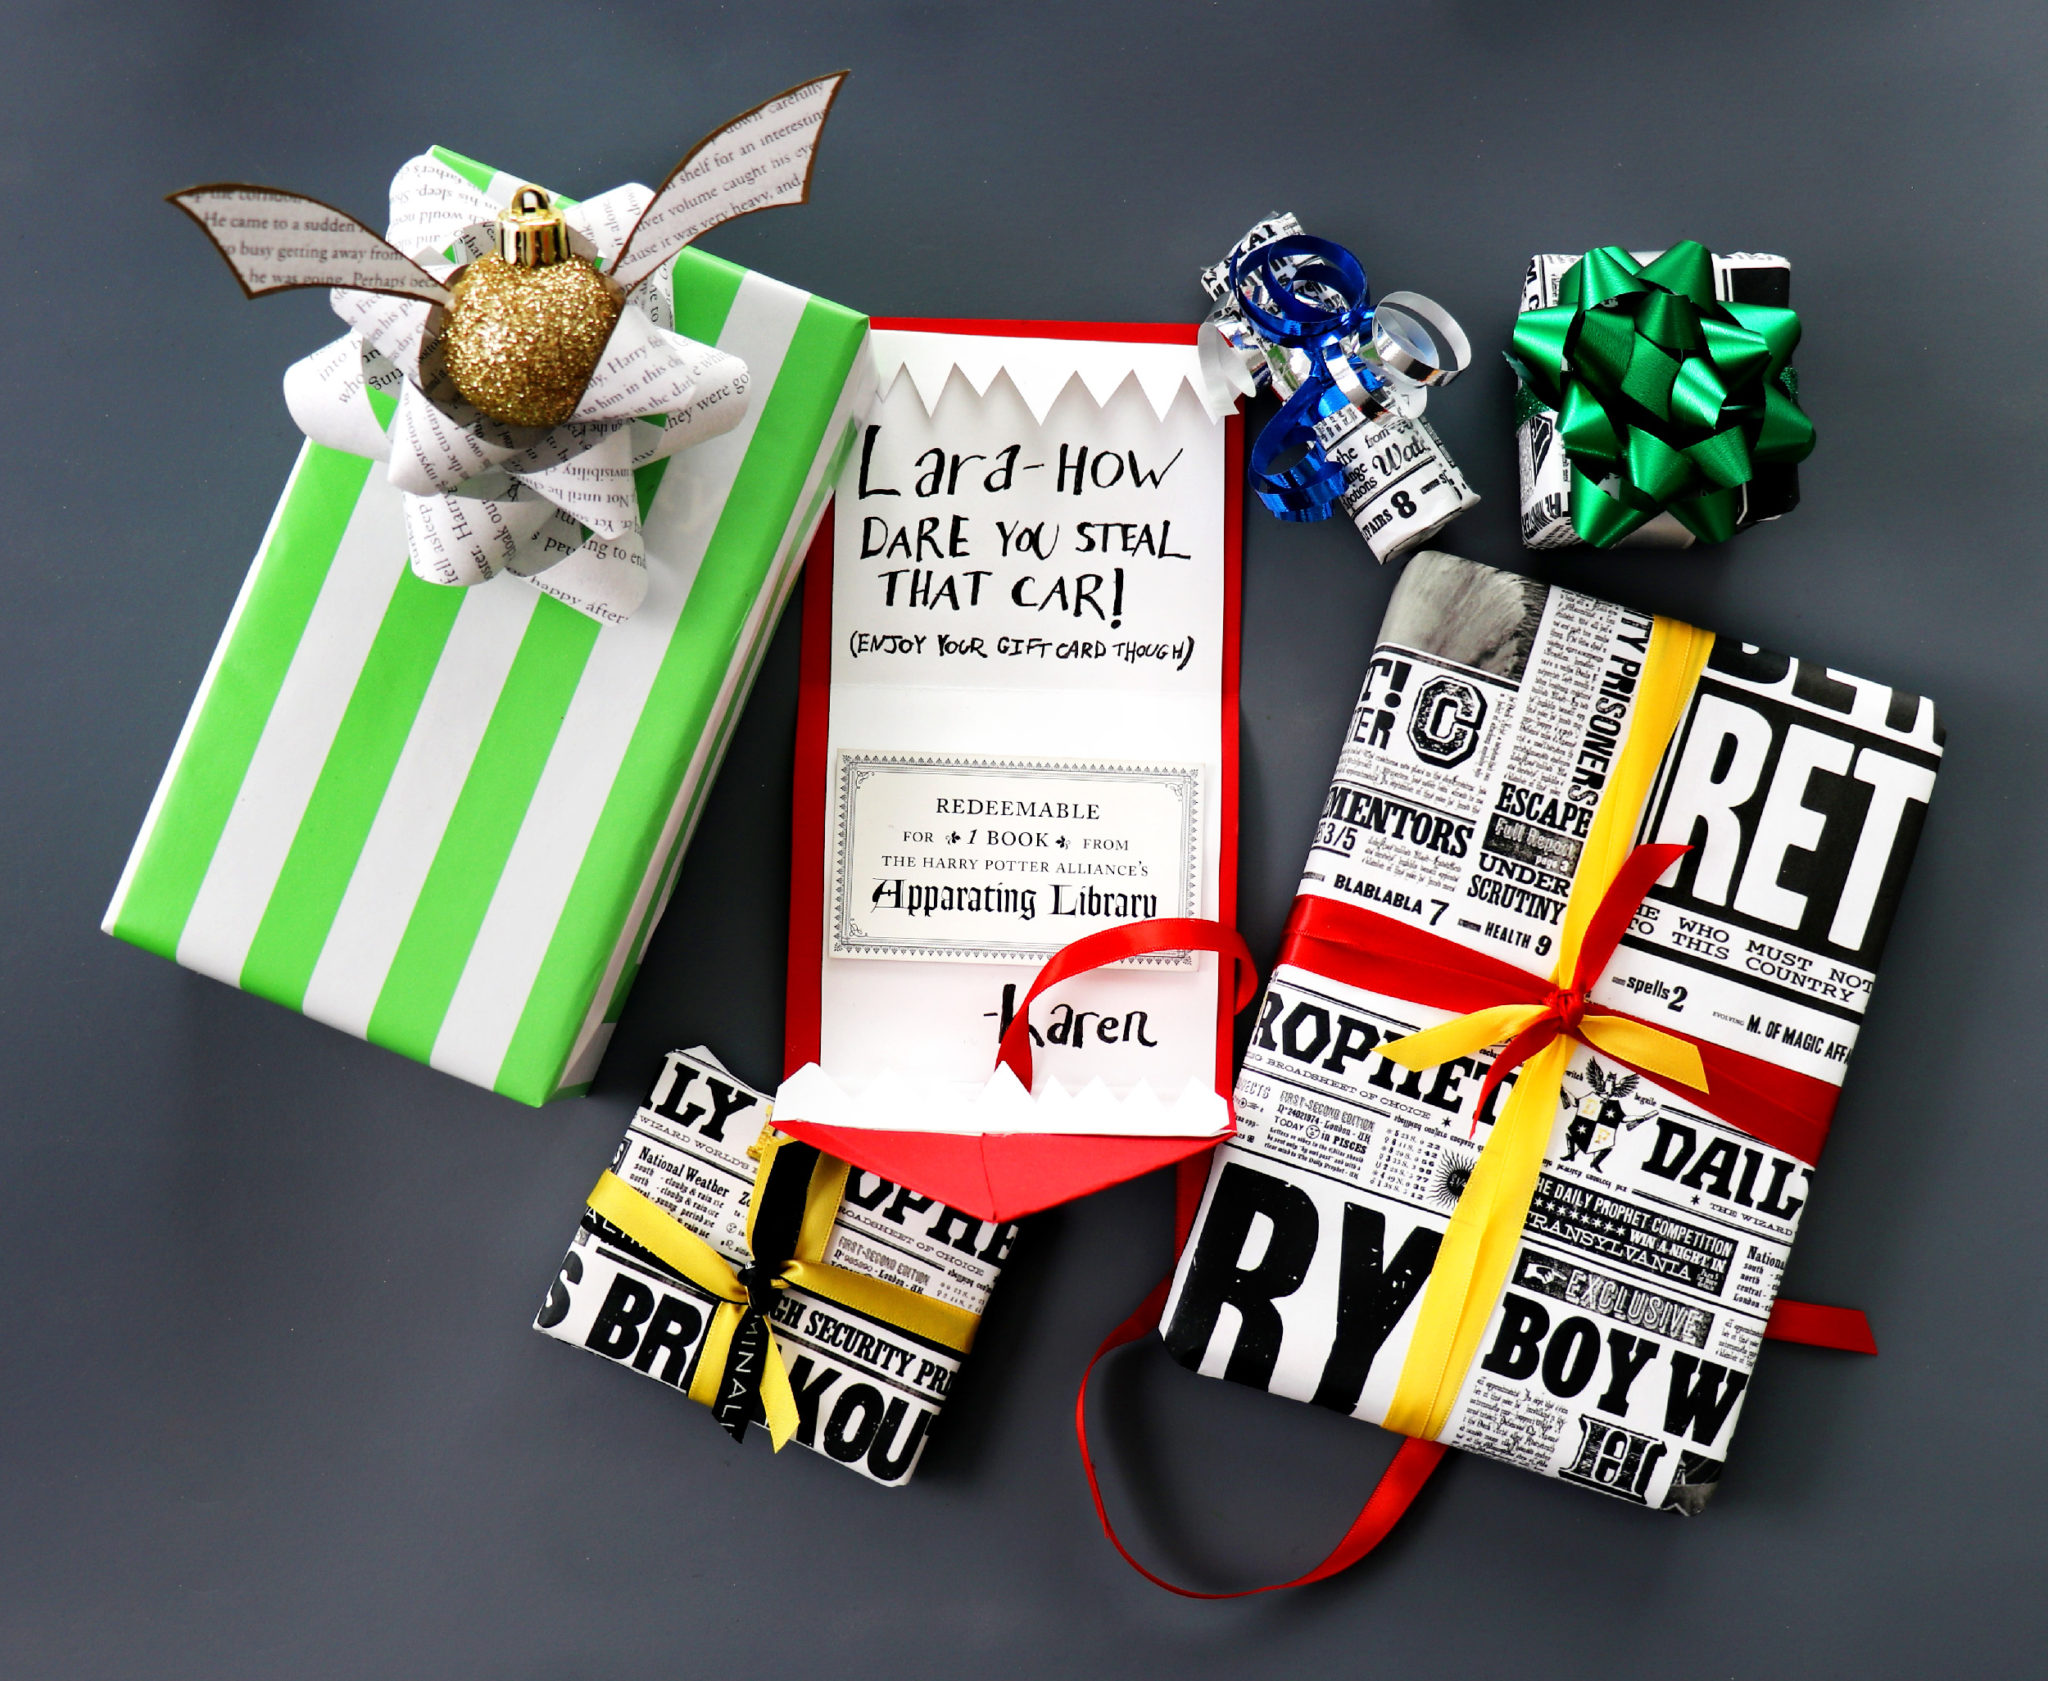 Diy harry potter gift wrapping ideas karen kavett i love wrapping gifts for the holidays and i obviously also love harry potter so today i decided to combine the two into diy gift wrapping you can do negle Choice Image